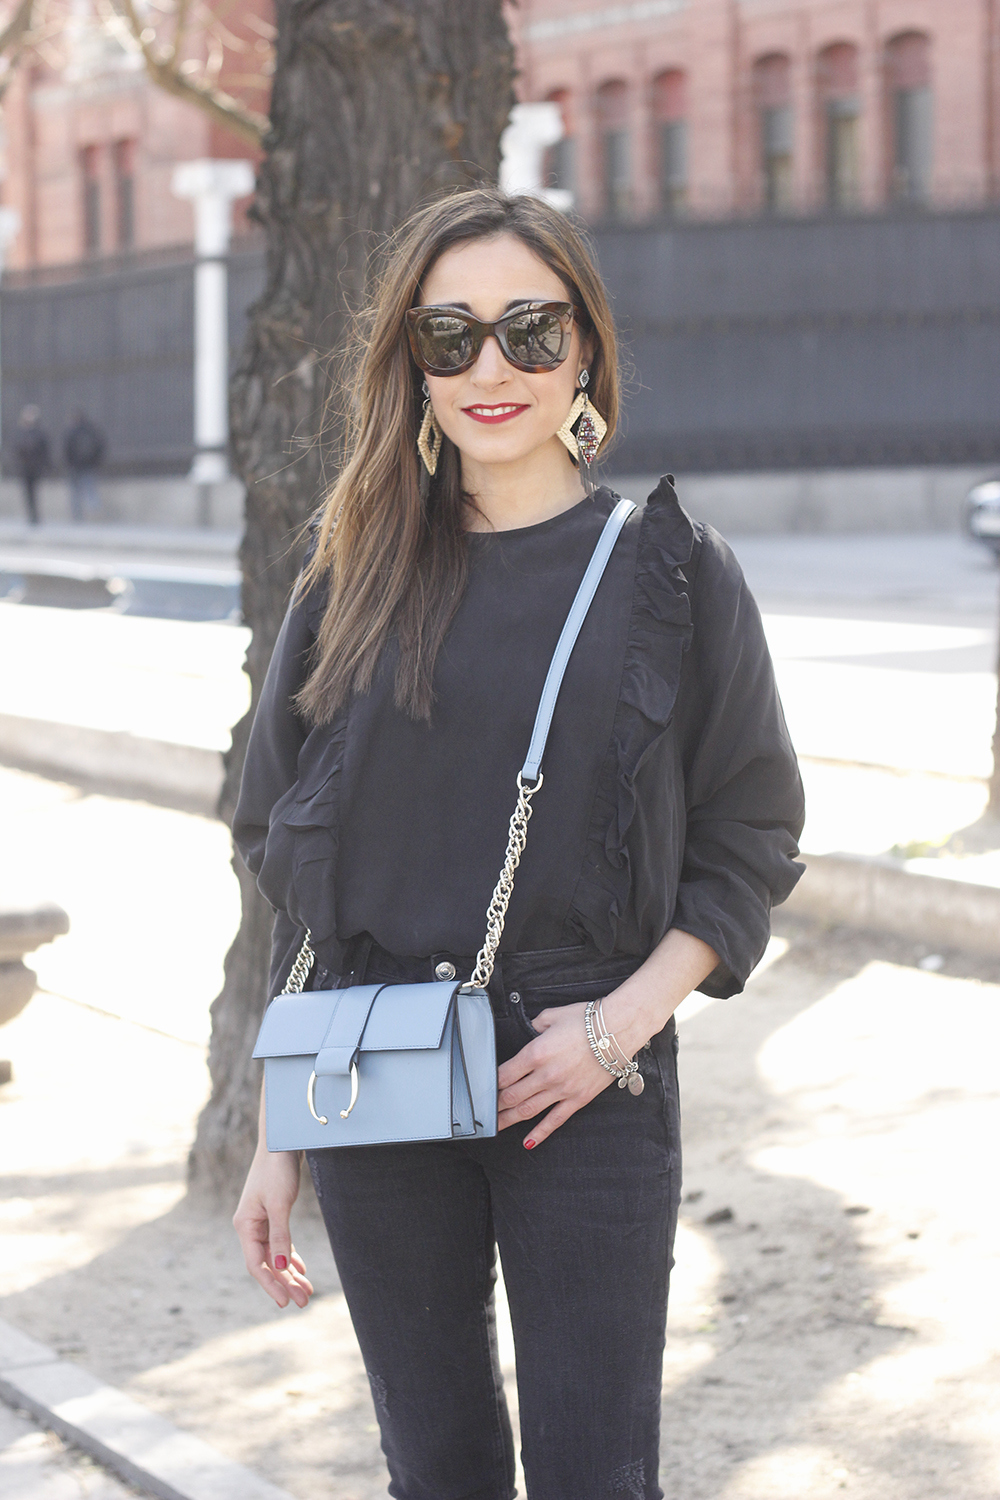 Black ruffled shirt black jeans uterqüe bag earrings sandals outfit style fashion céline sunnies spring09